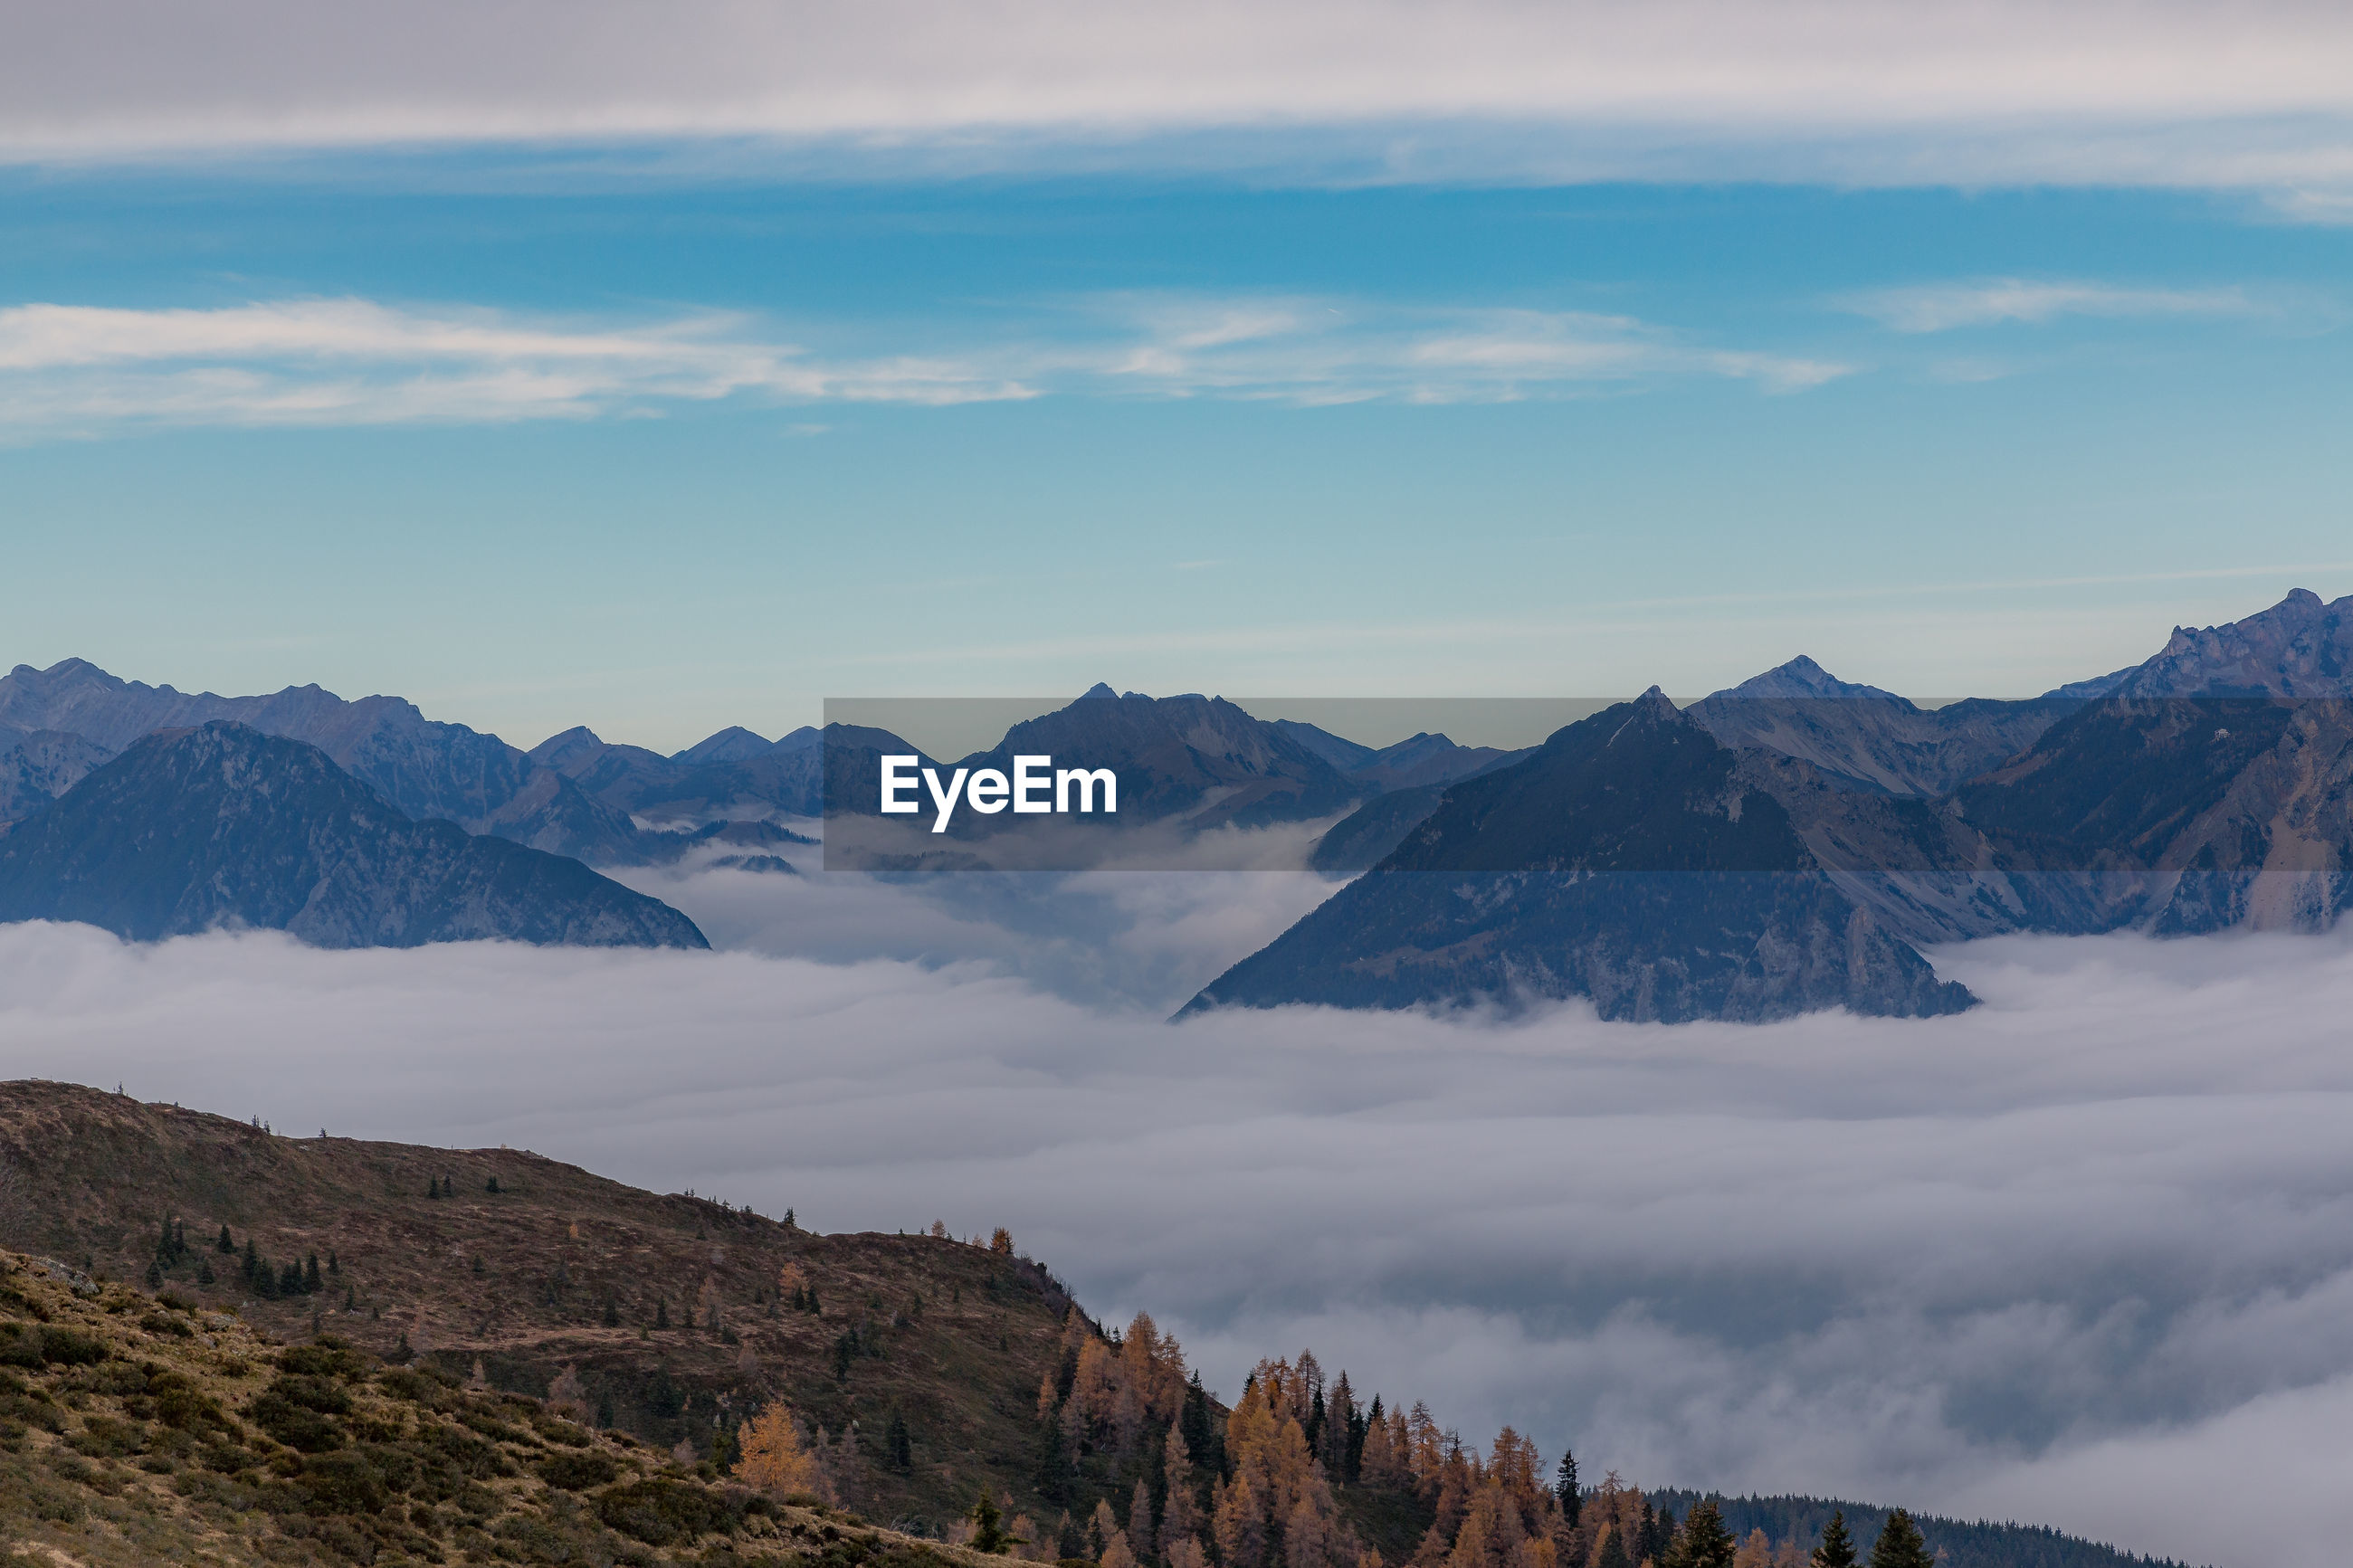 VIEW OF MOUNTAINS AGAINST CLOUDY SKY